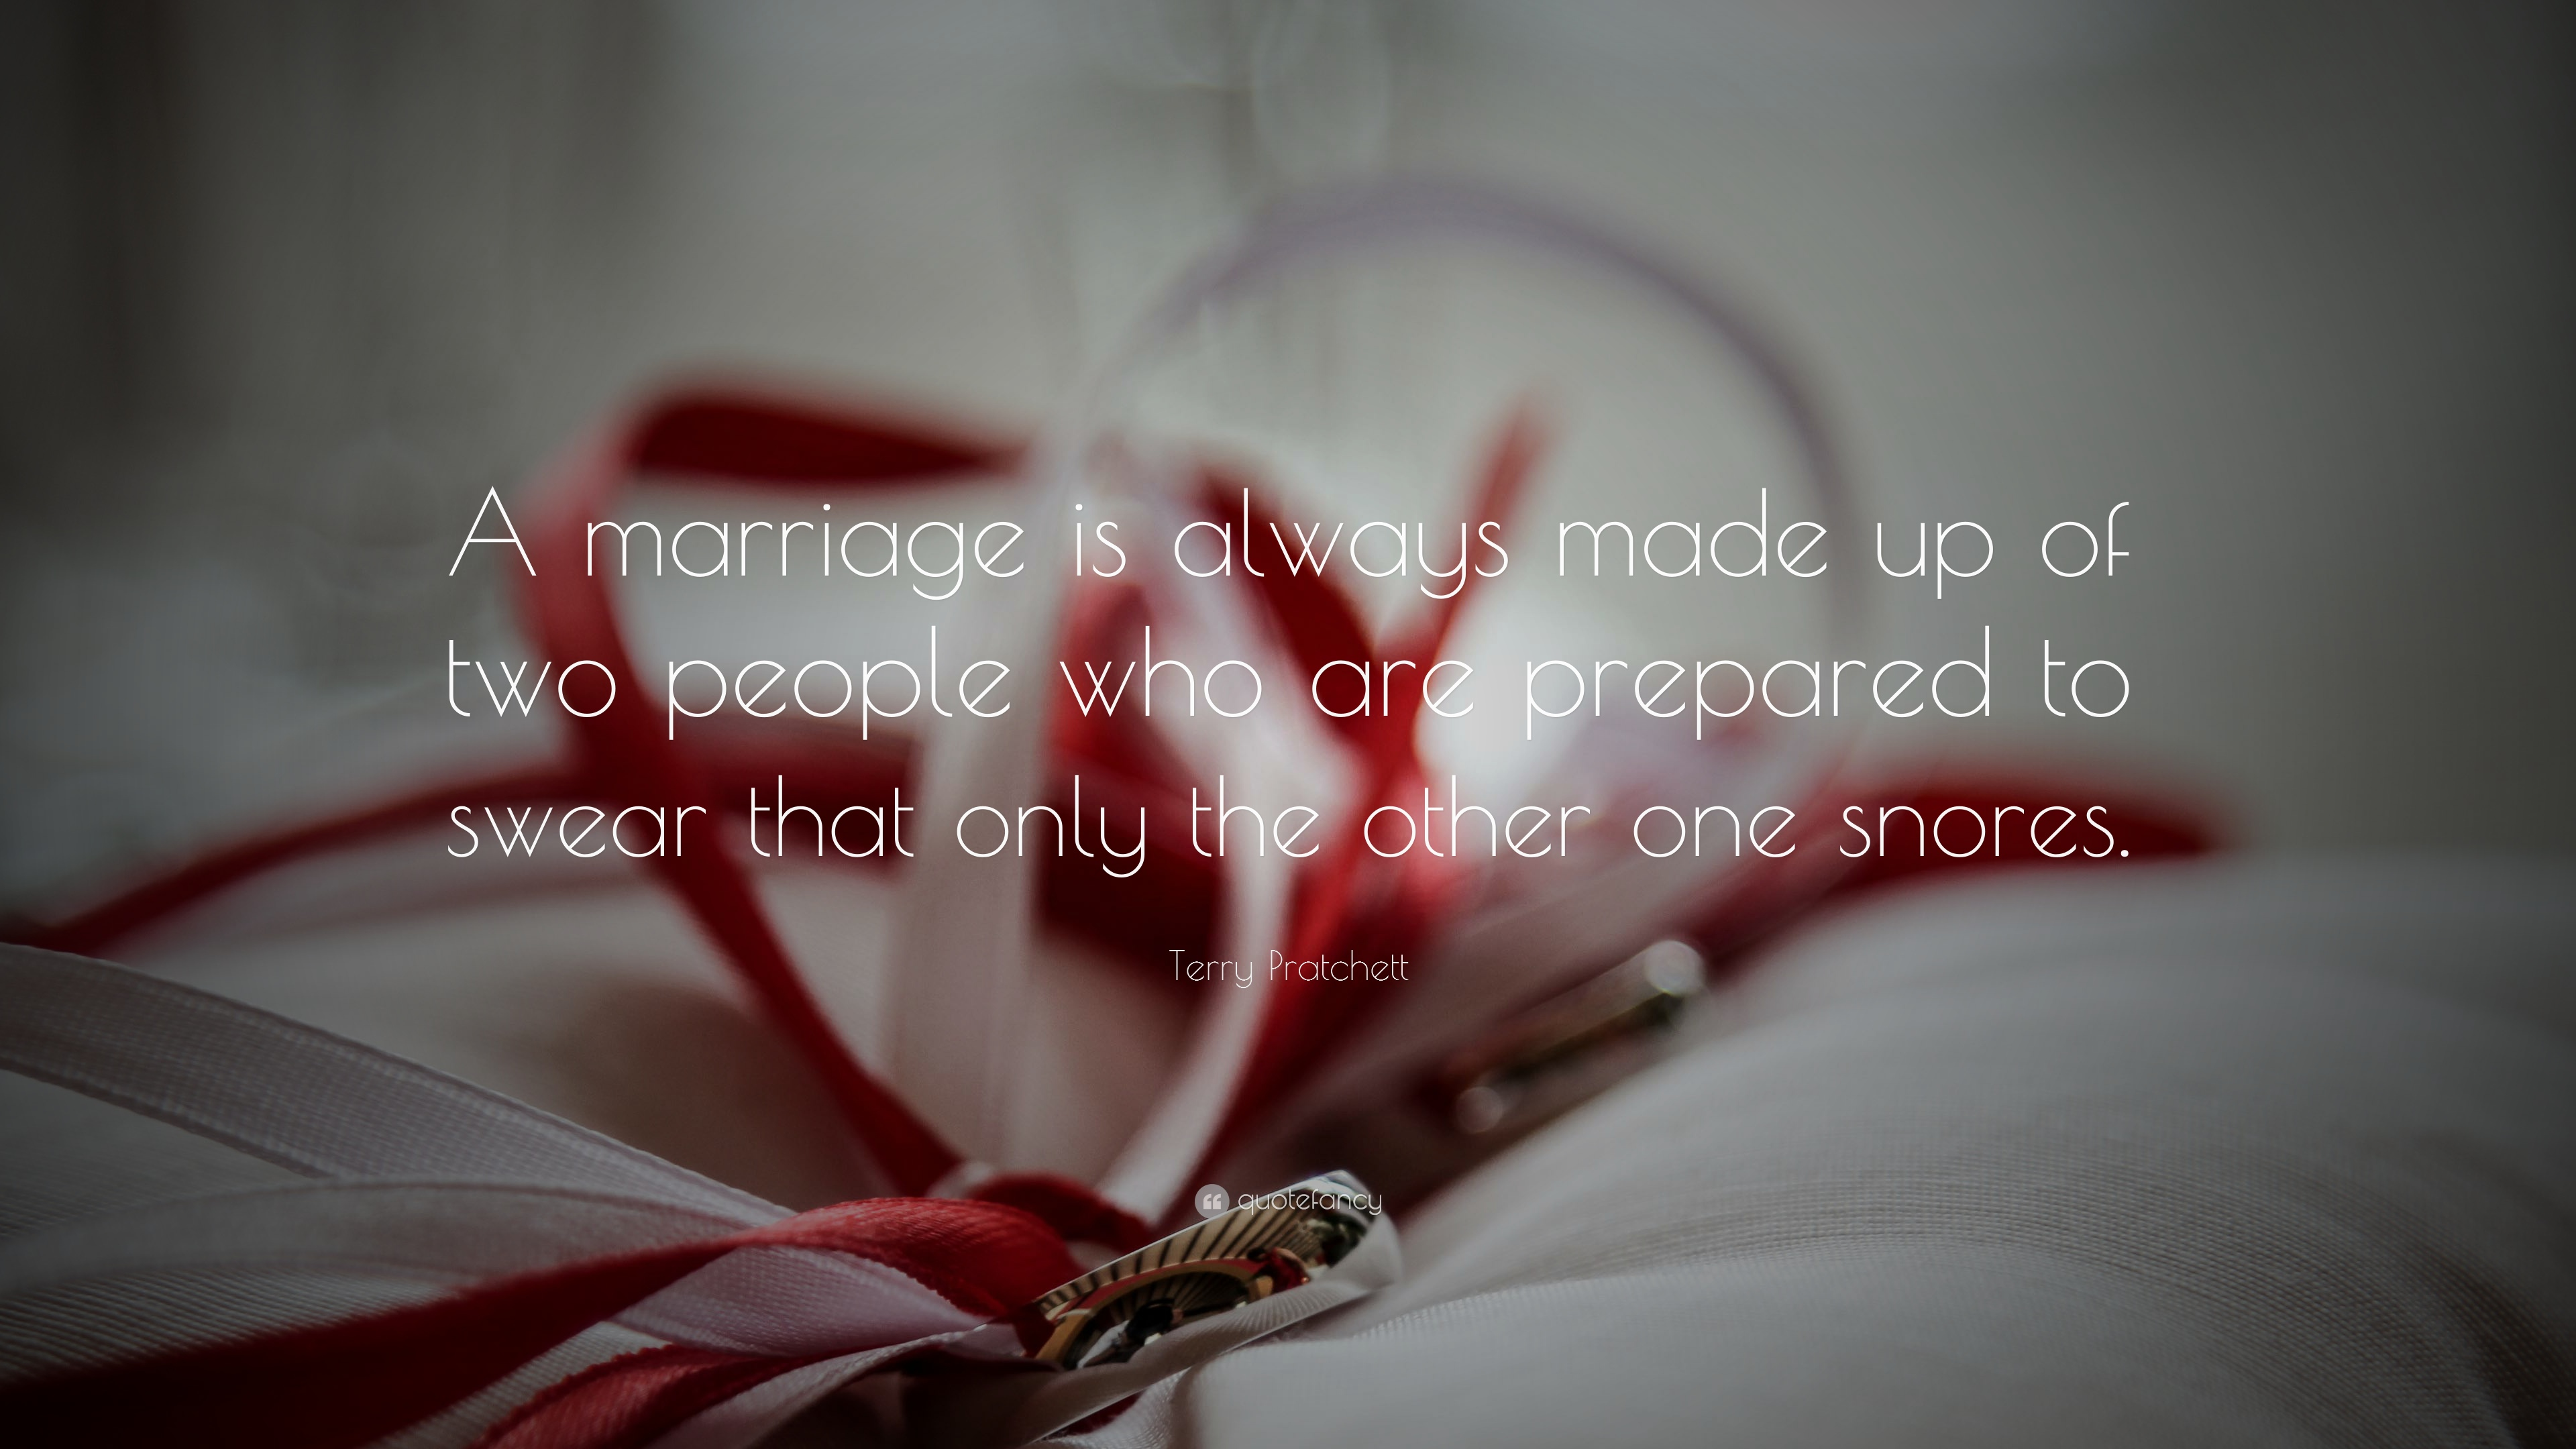 Love Marriage Quotes Interesting Marriage Quotes 58 Wallpapers  Quotefancy